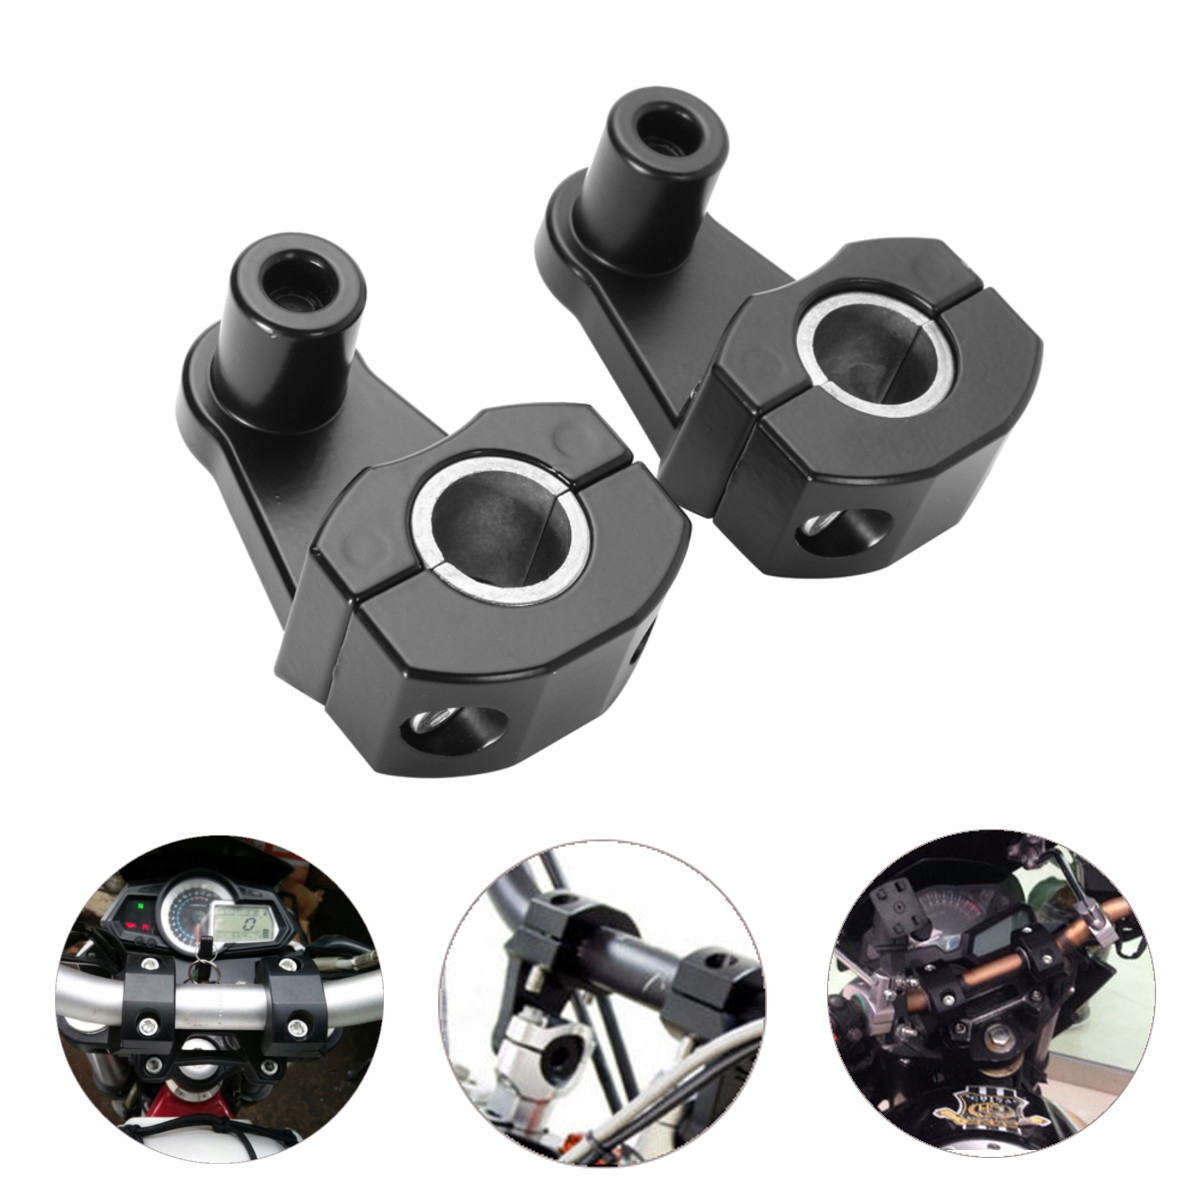 22MM Handlebar Clamps Riser Motorcycle Handle Fat Bar Mount Universal